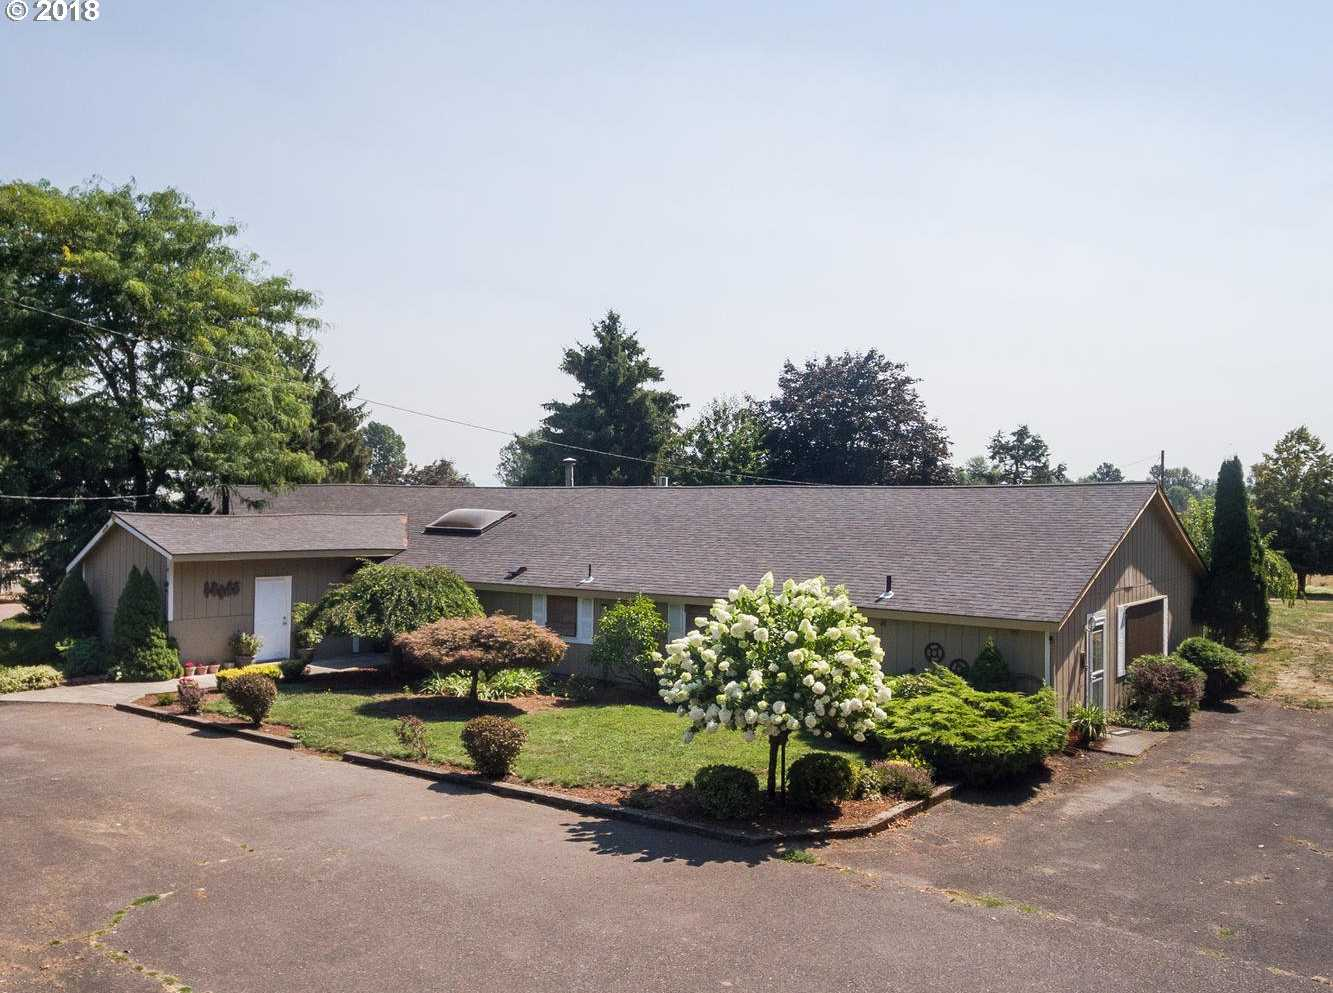 $2,600,000 - 3Br/2Ba -  for Sale in Sauvie Island, Portland